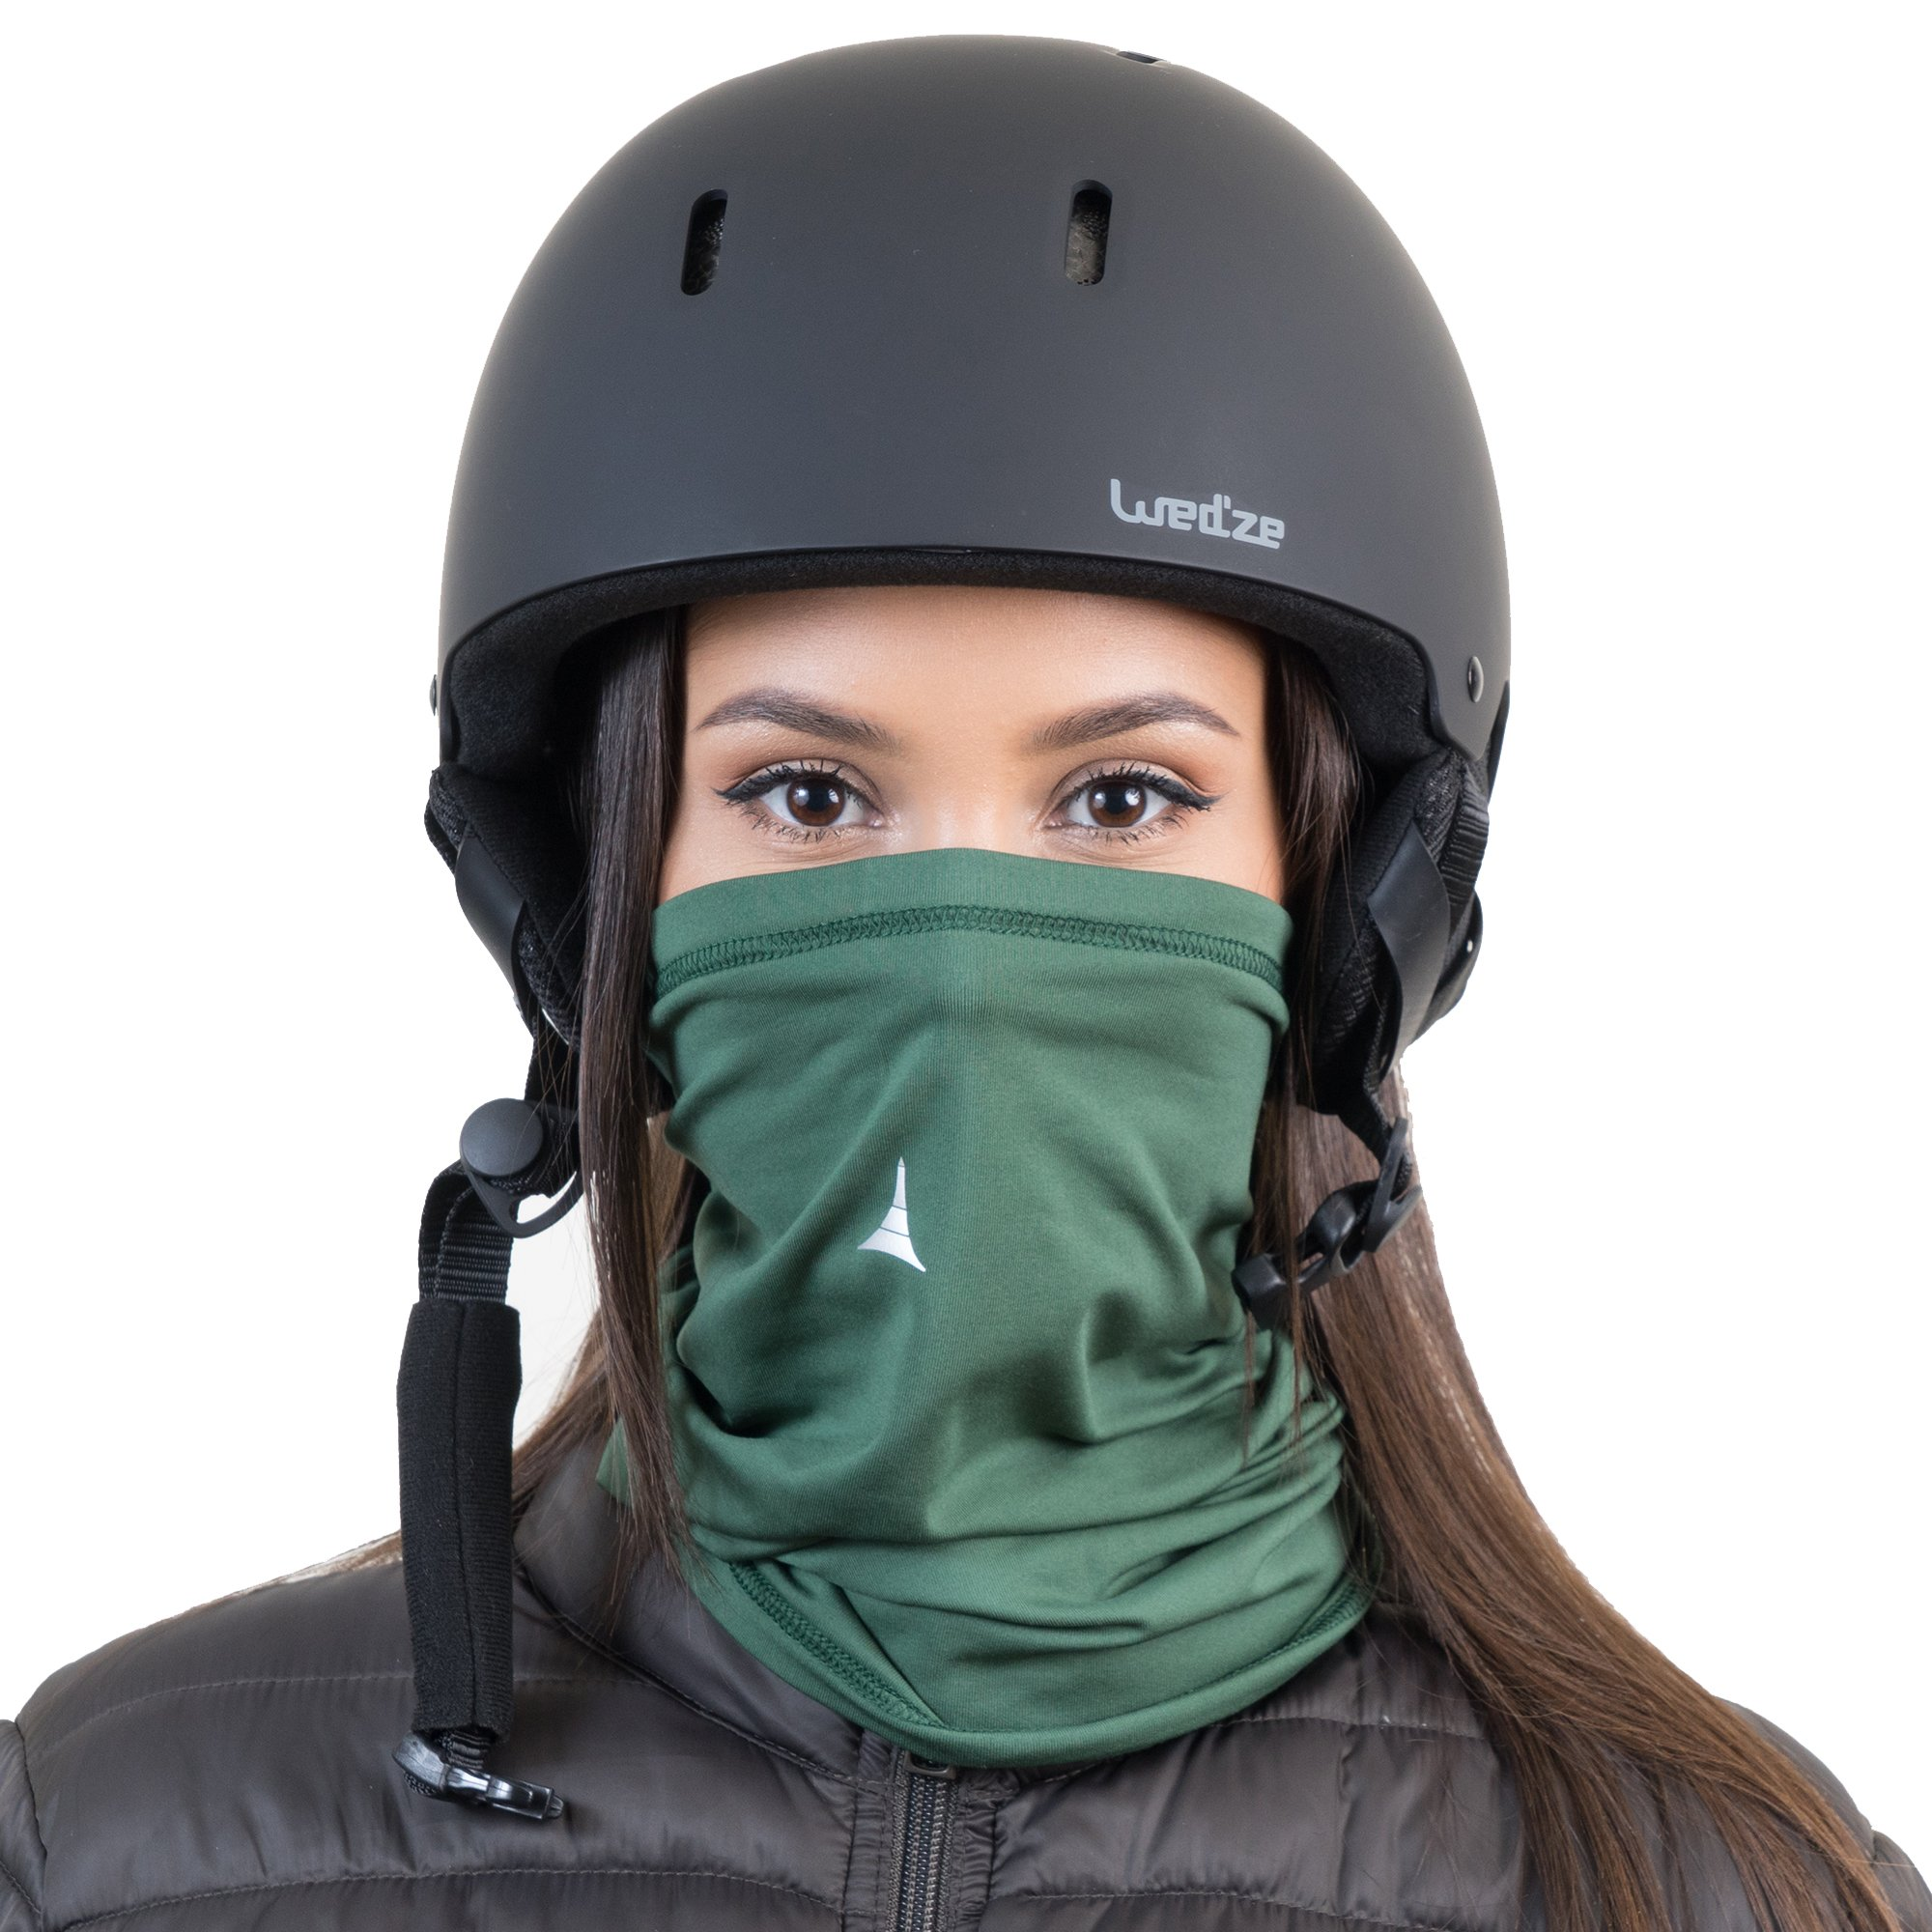 Fleece Neck Warmer [Solids] / Reversible Neck Gaiter Tube, Ear Warmer Headband, Mask & Beanie. Ultimate Thermal Retention, Versatility & Style. Performance Comfort Fleece & Polyester Construction